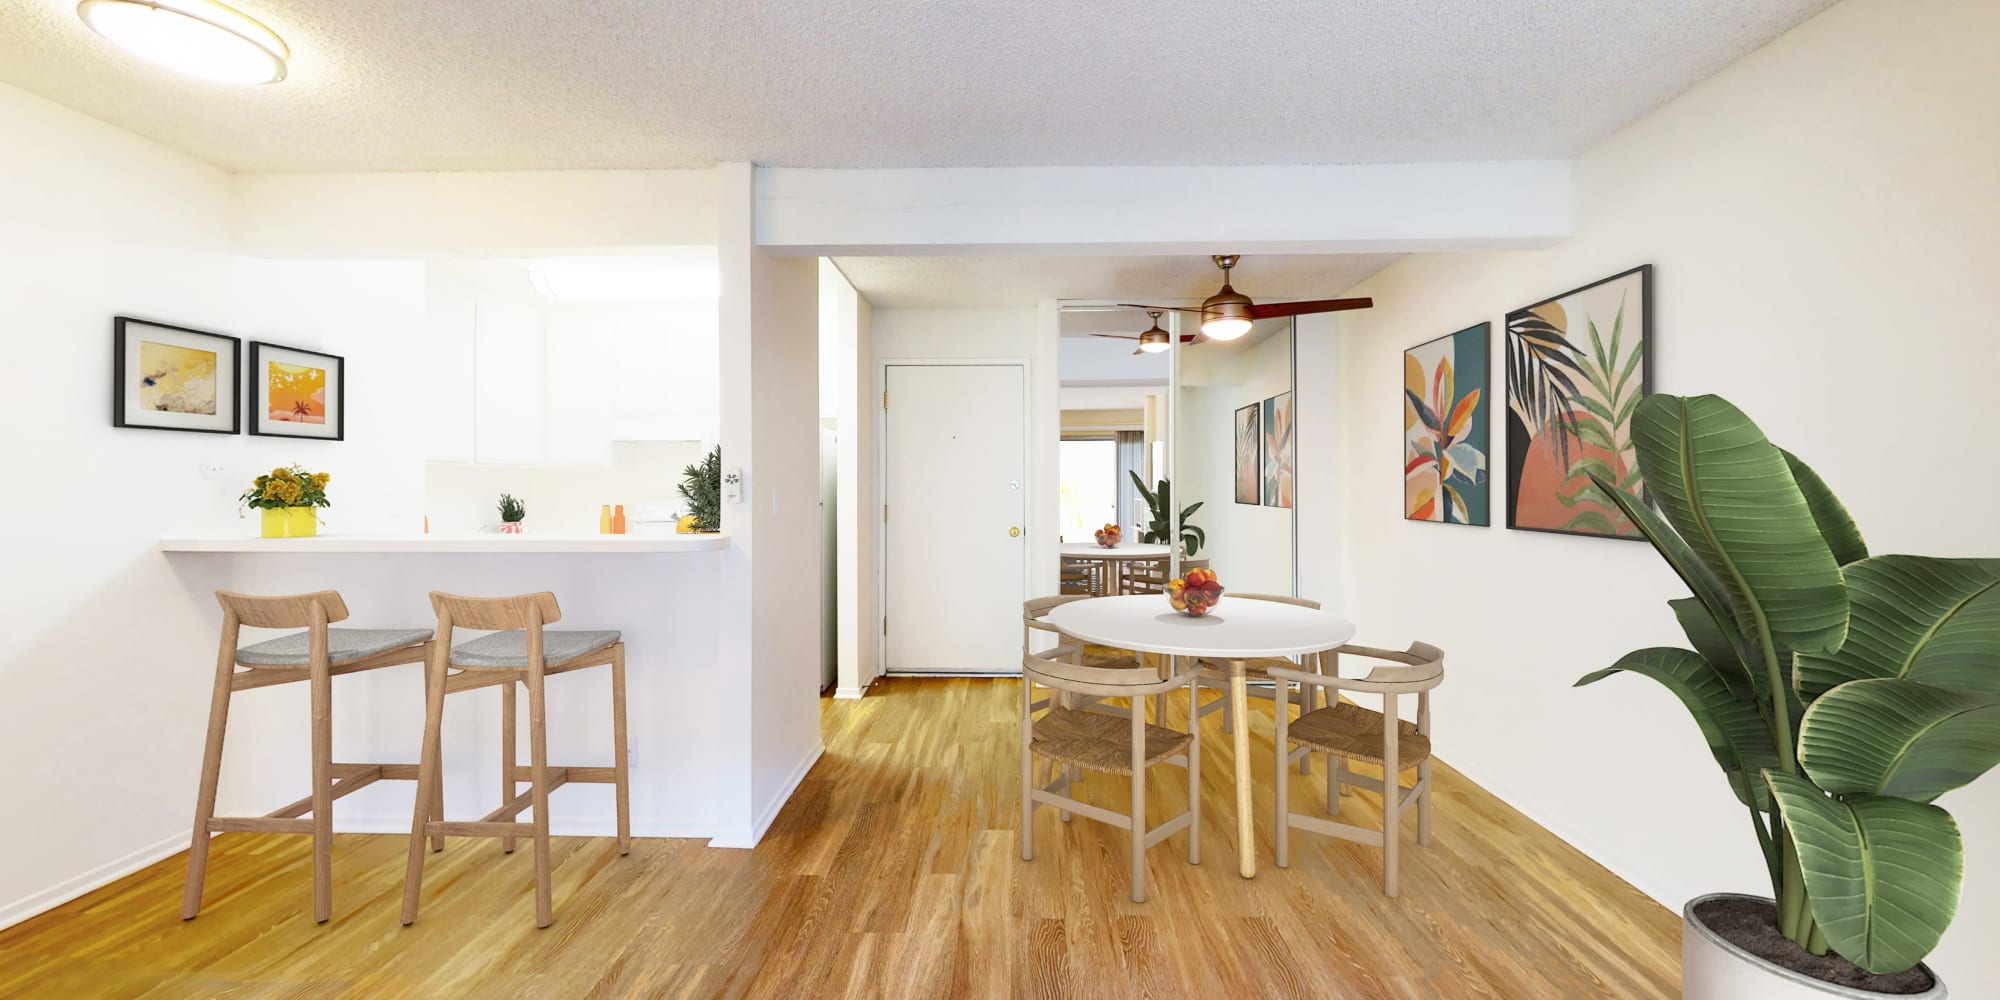 Kitchen and dining area in a one-bedroom apartment at Village Pointe in Northridge, California